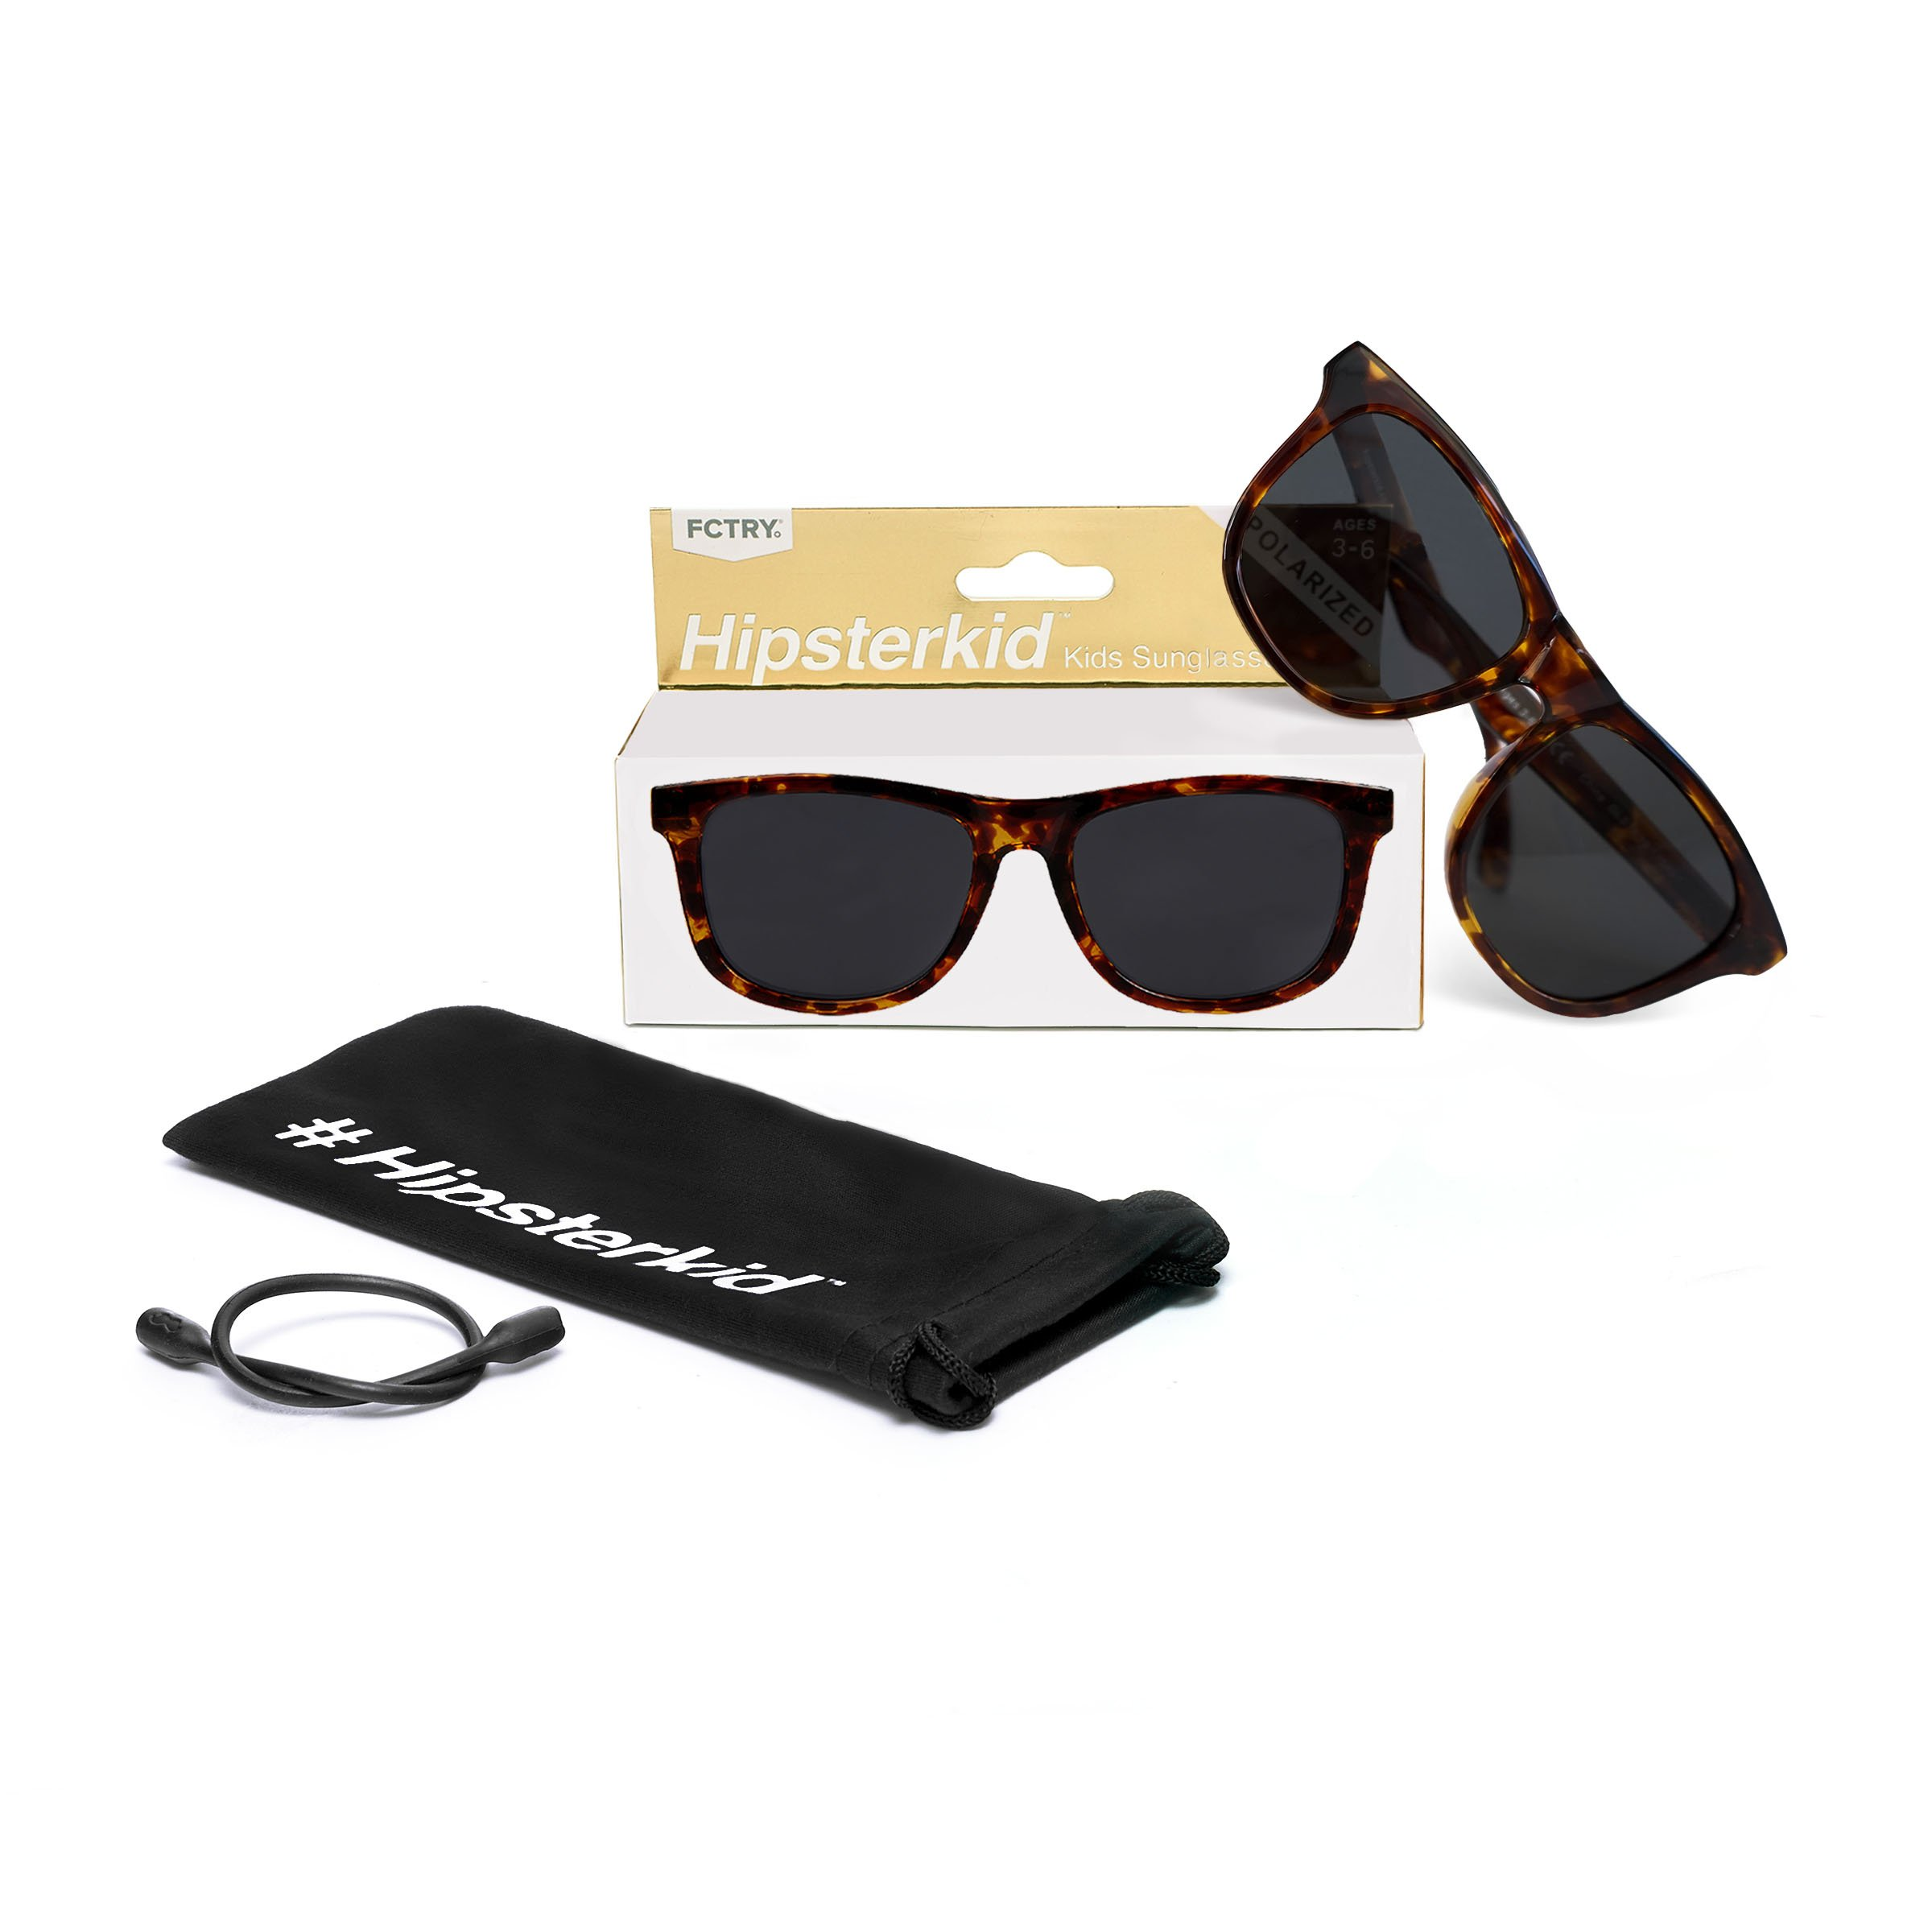 Hipsterkid BPA Free, Warranty Protected, Polarized Sunglasses for Babies, Ages 0-2, in Tortoise Shell from the Golds Collection by FCTRY